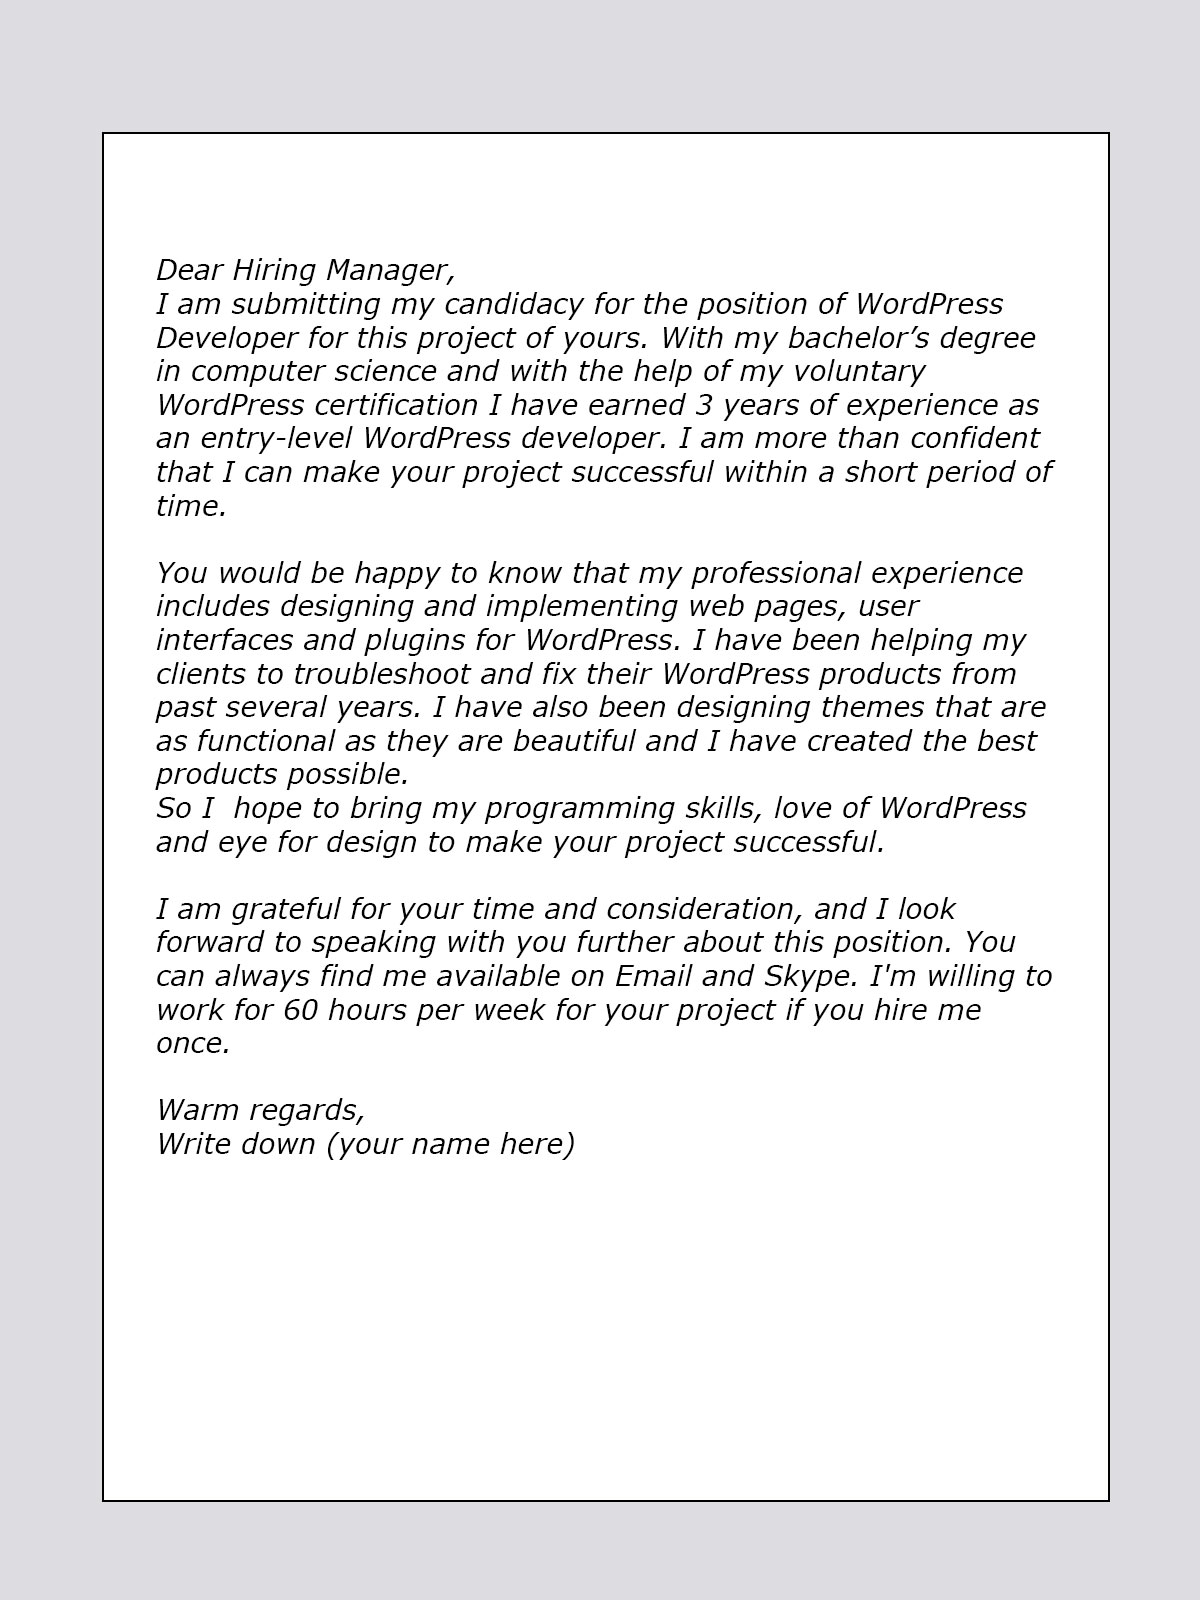 Upwork cover letter sample for wordpress developer upwork help cover letter sample for wordpress developer madrichimfo Choice Image